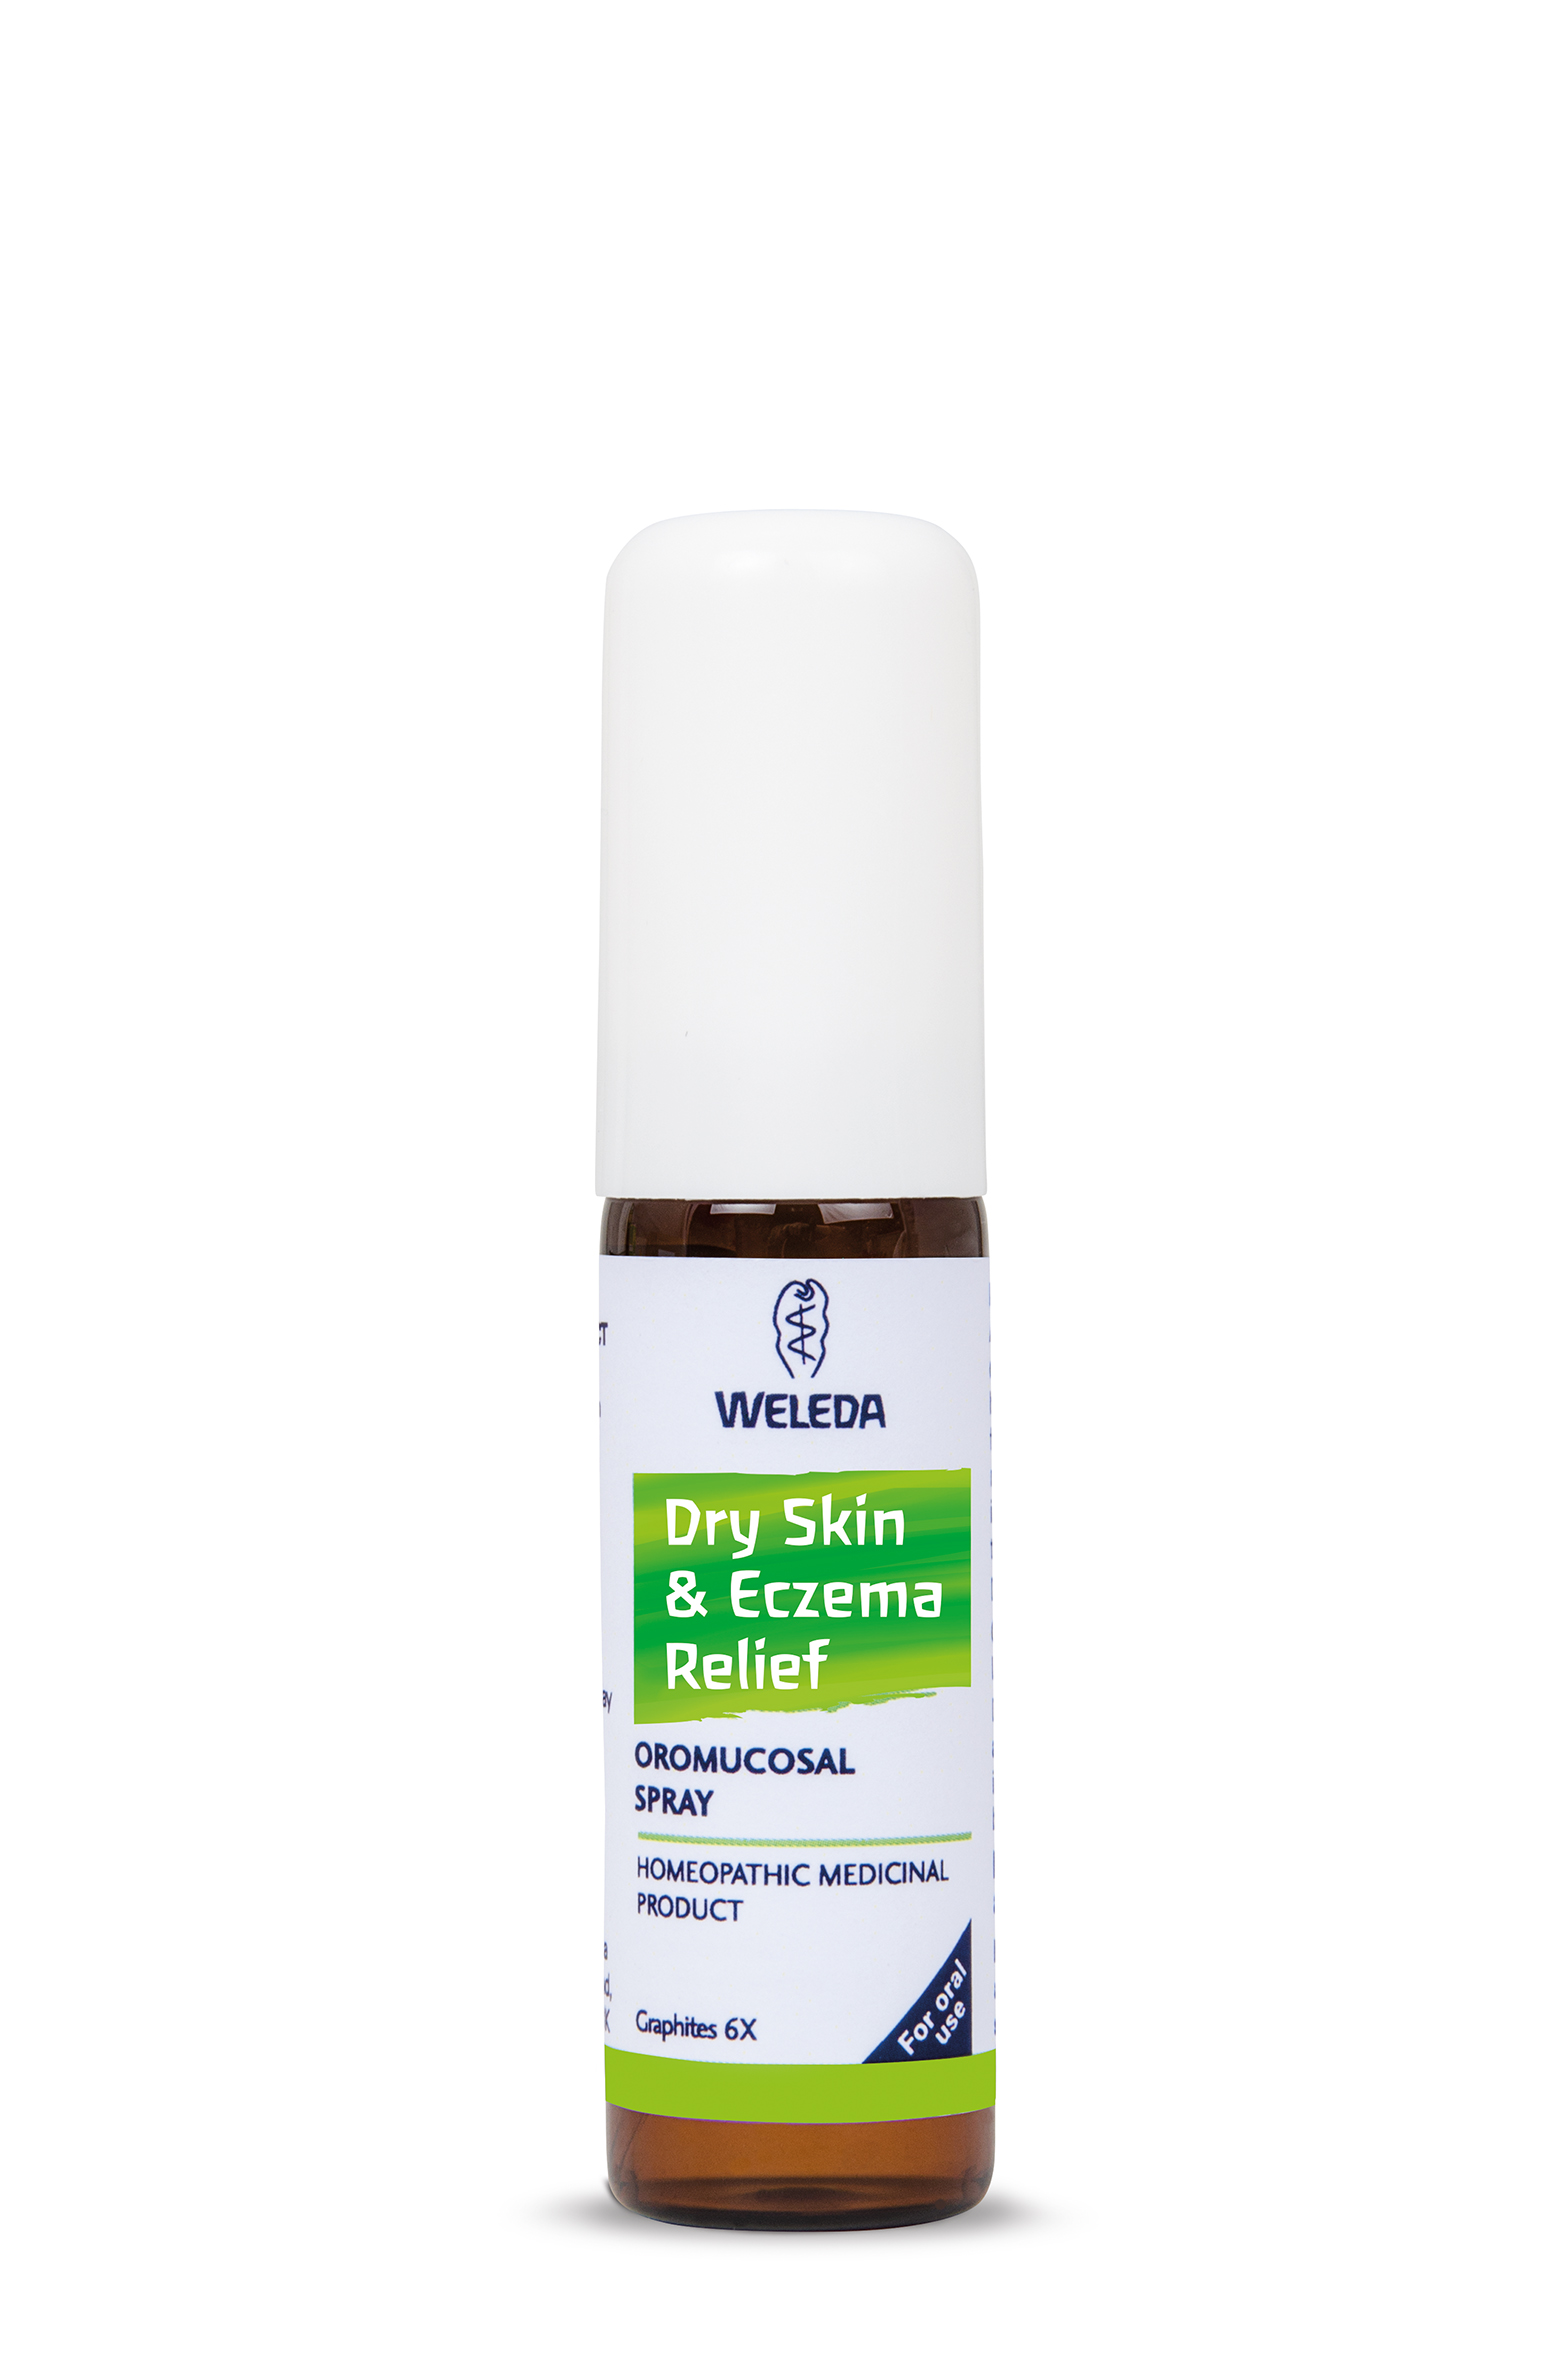 Dry Skin & Eczema Relief Spray-20ml